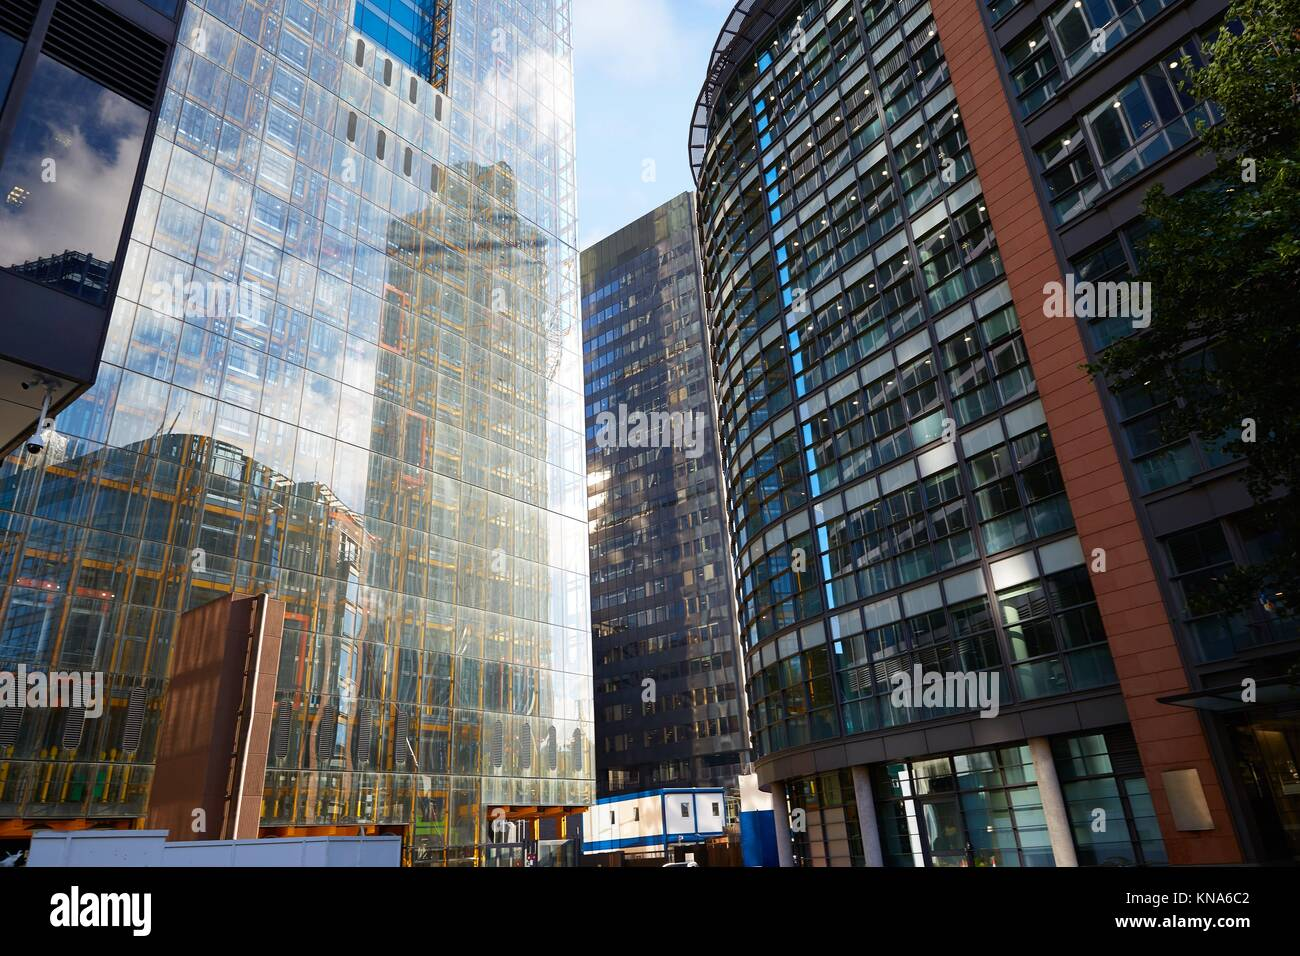 London financial district street Square Mile England UK. - Stock Image